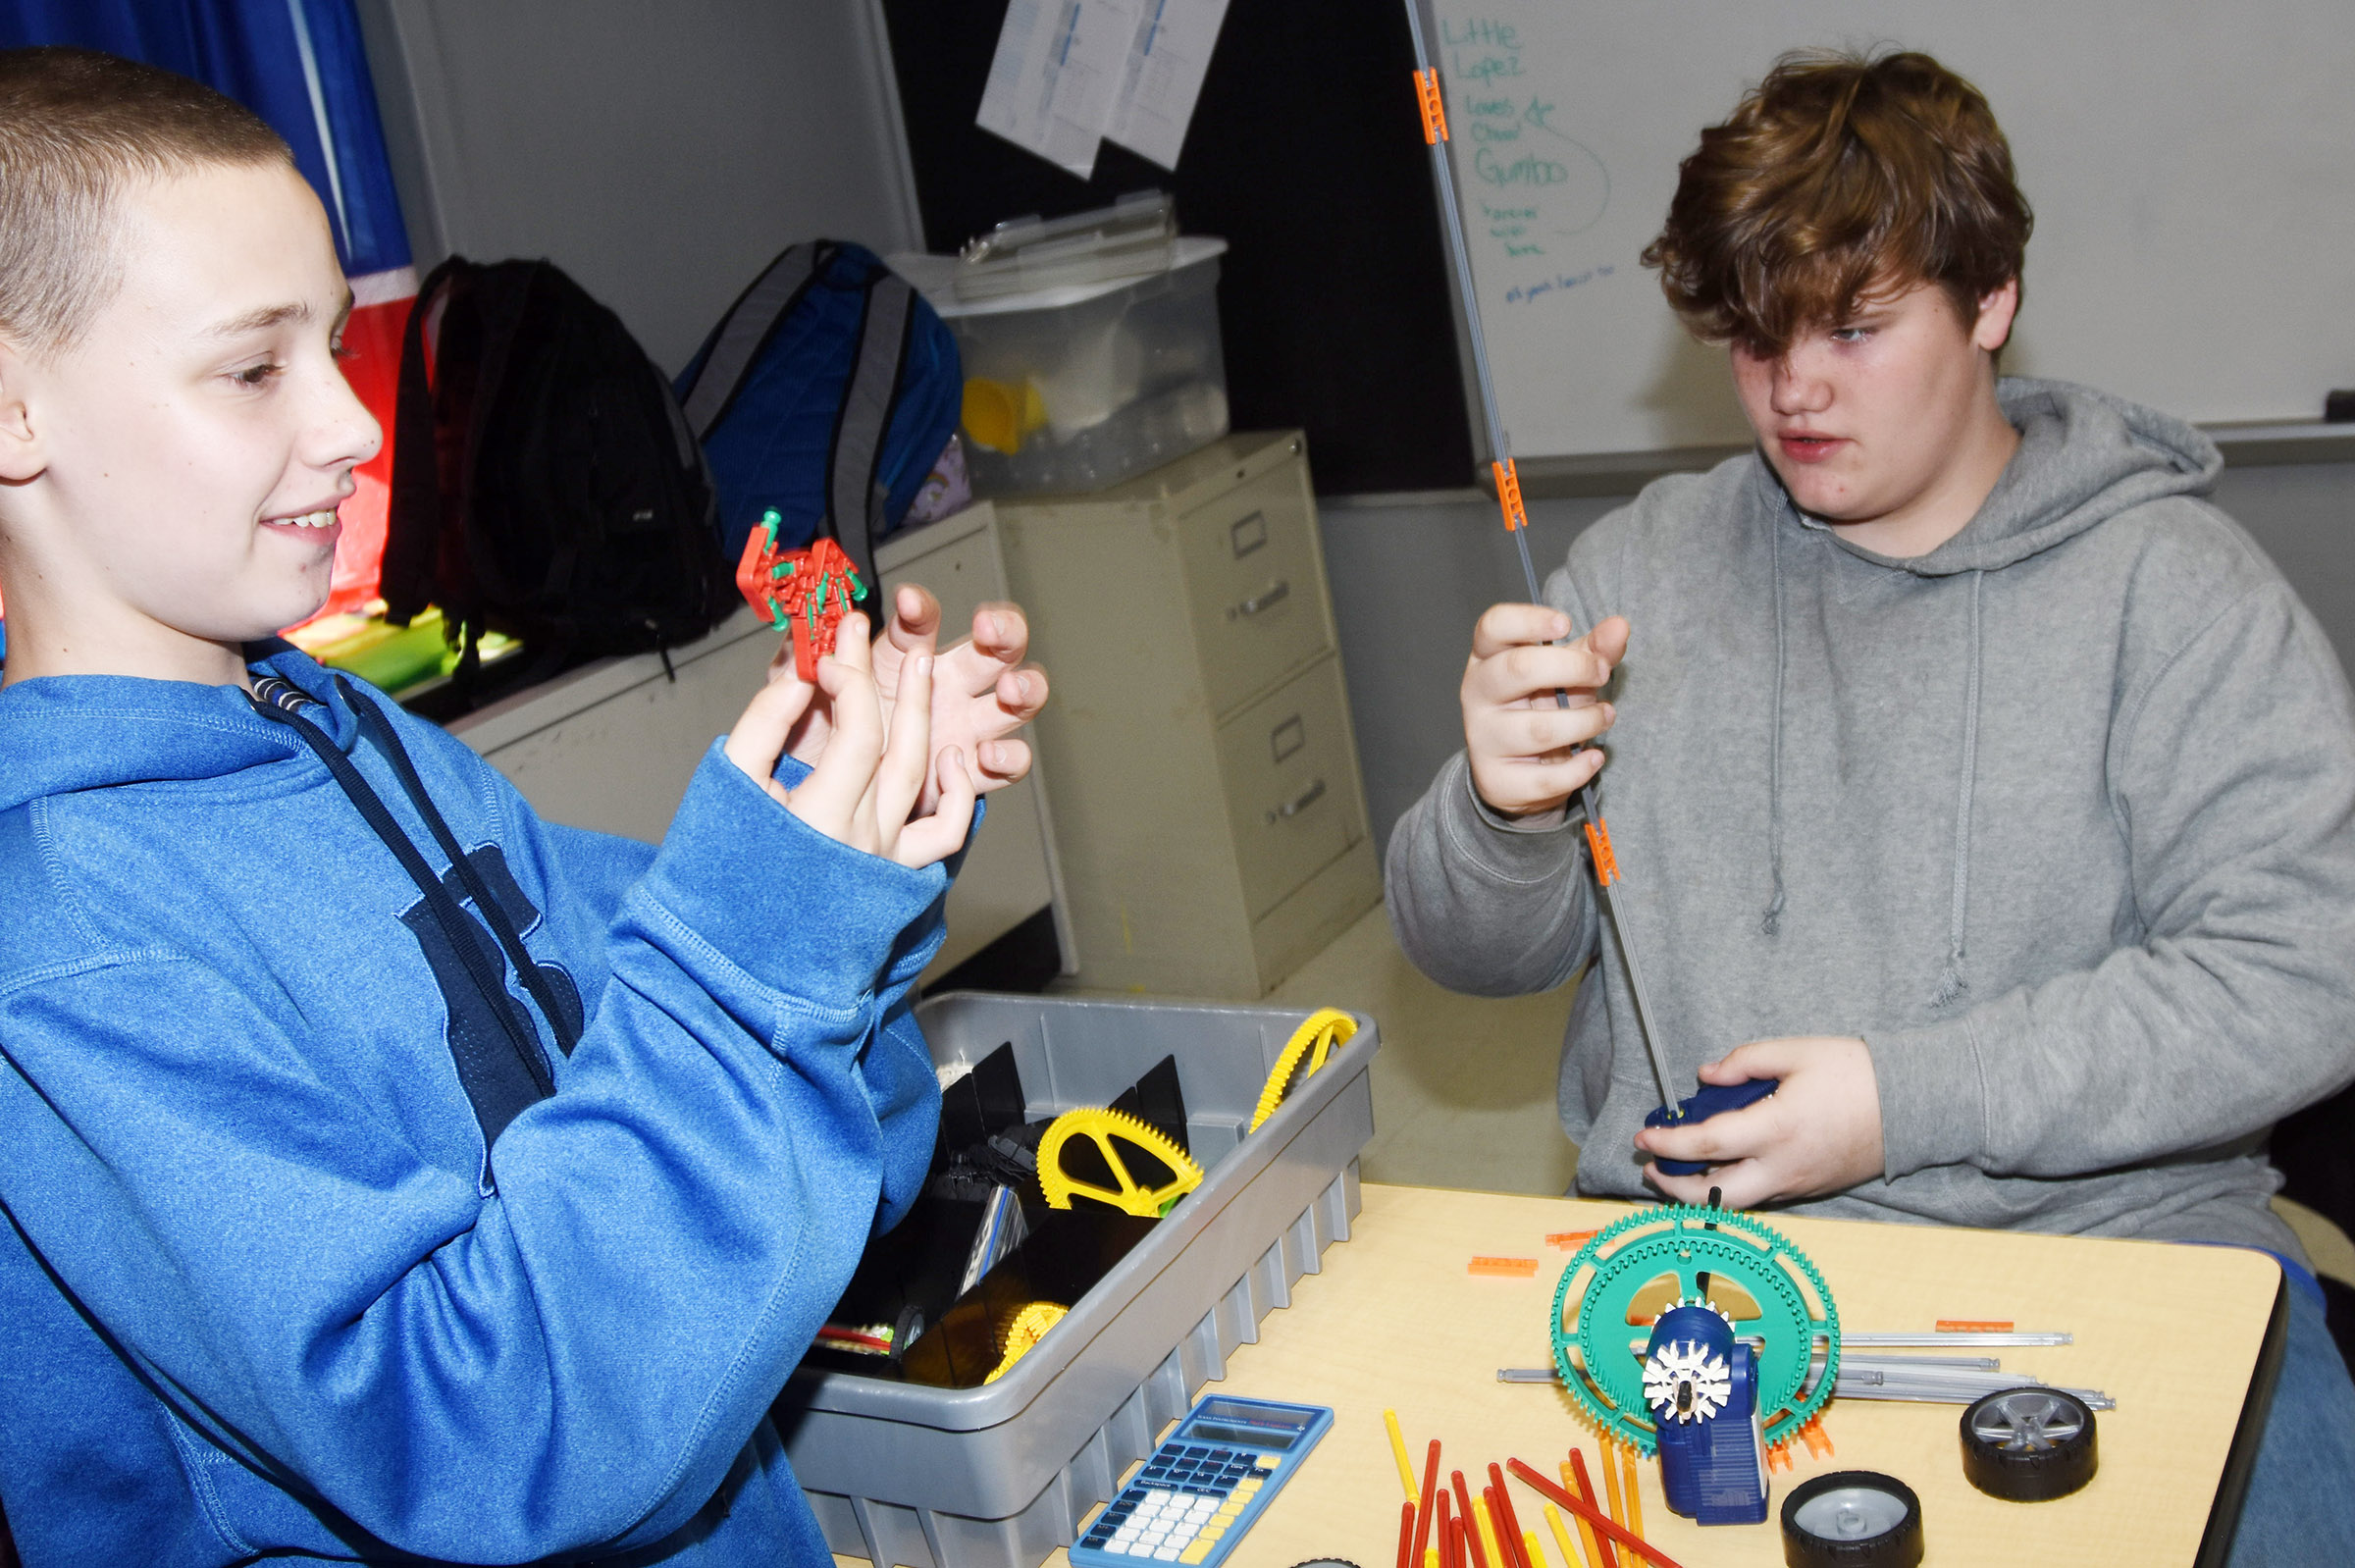 CMS eighth-graders Brandon Nelson, at left, and Gavin Morris build with K'nex blocks.